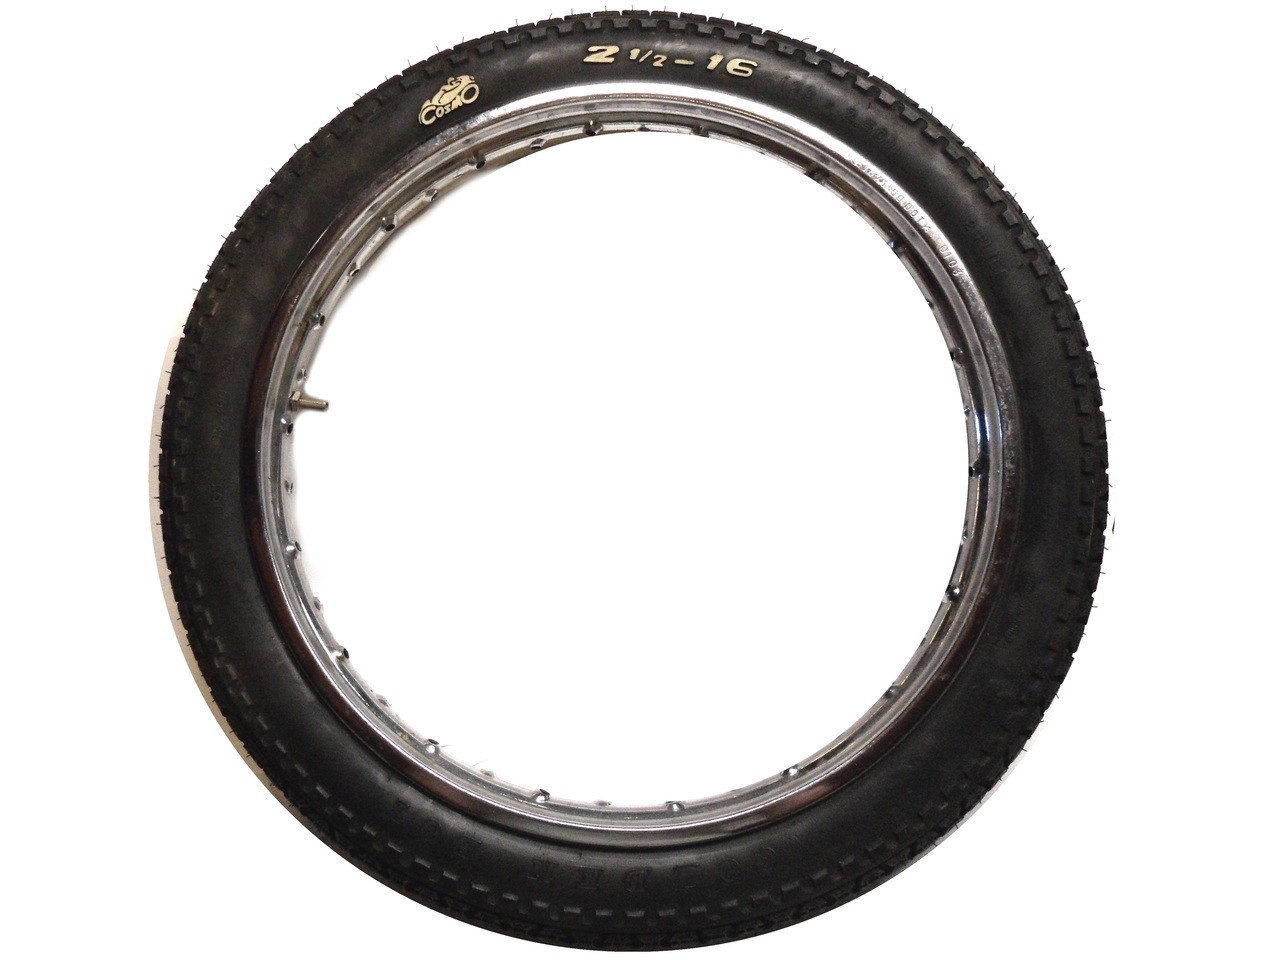 "Cosmo Golden Boy Tire 16 x 2.50"" - Kinetic Original"